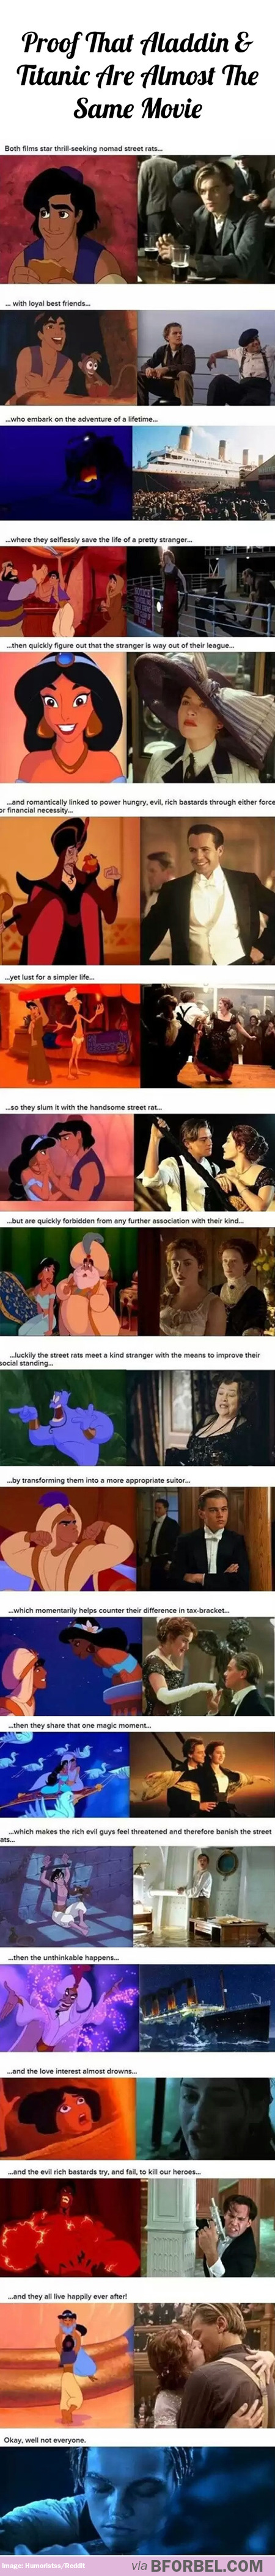 Proof that aladdin and titanic are almost the same movie i love